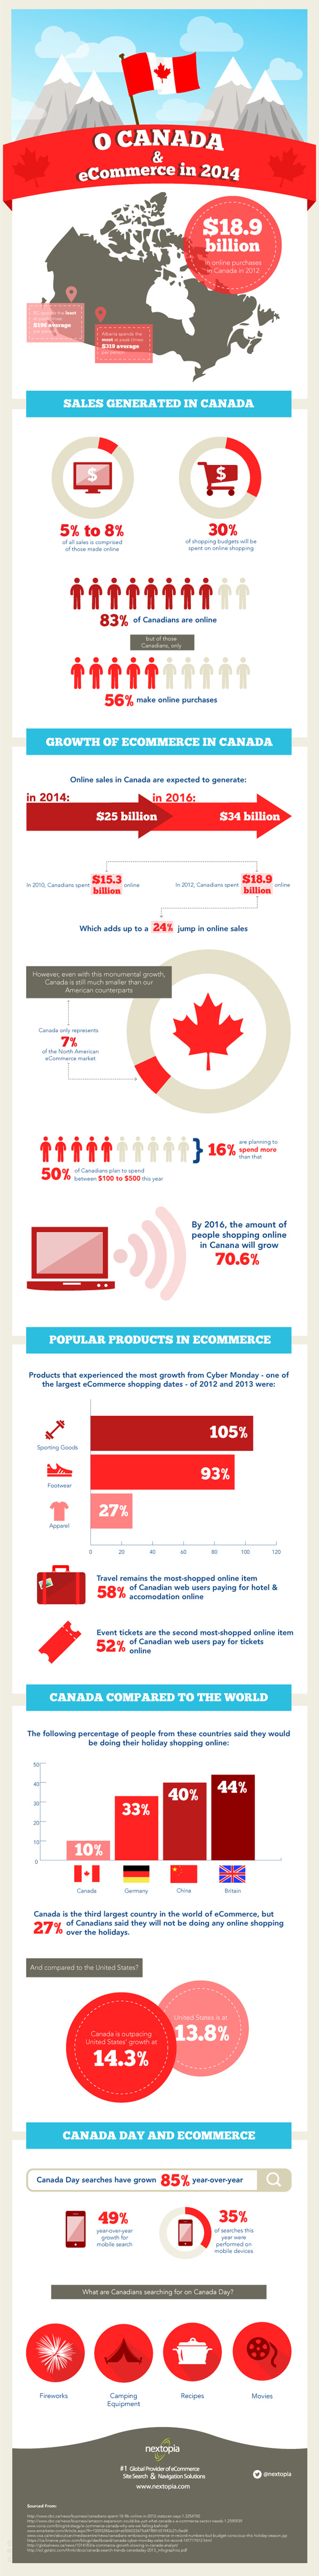 canada-ecommerce-infographic